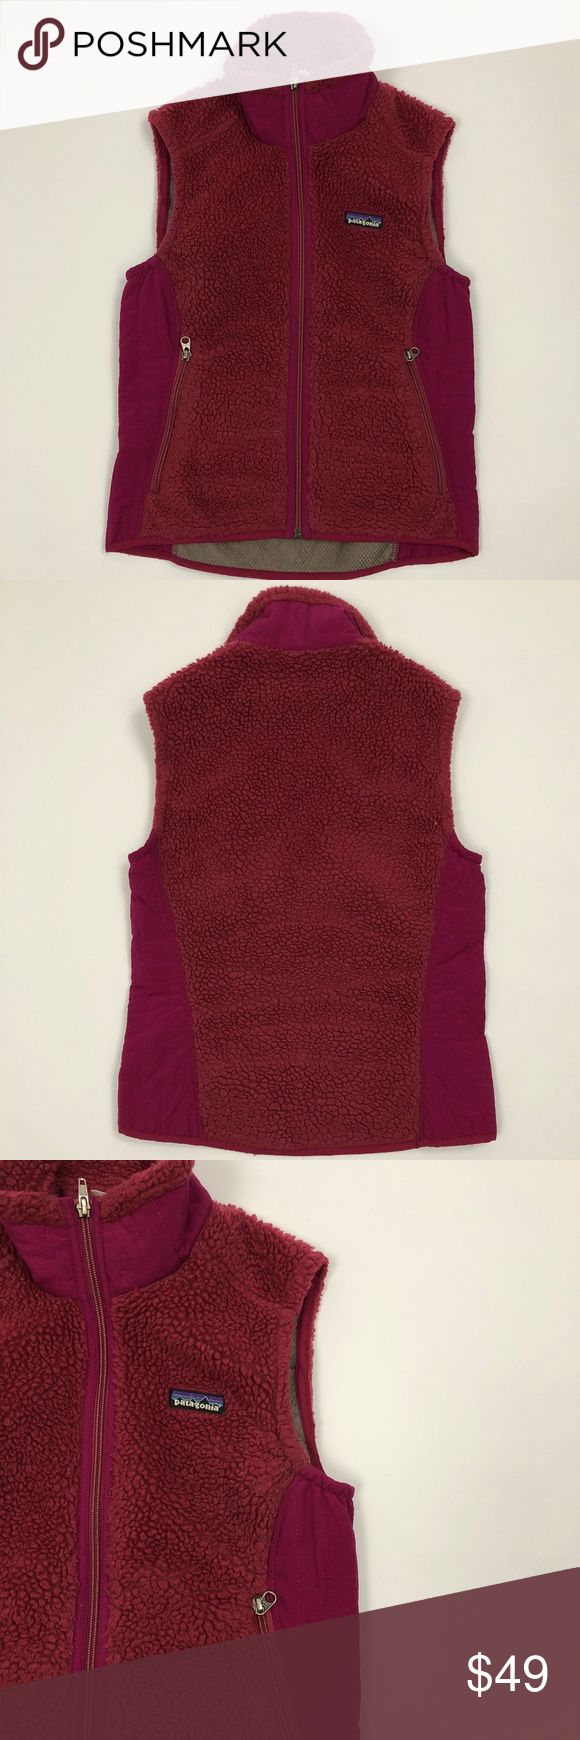 "Patagonia Retro X Fleece Vest Maroon Pink Sz S Patagonia Retro X fleece vest in maroon pink.  In good condition but does have signs of wear.  Approximate measurements: Chest 16"" Length 23"" Sleeve 23"" RTS #7030 Thank you! Patagonia Jackets & Coats Vests"